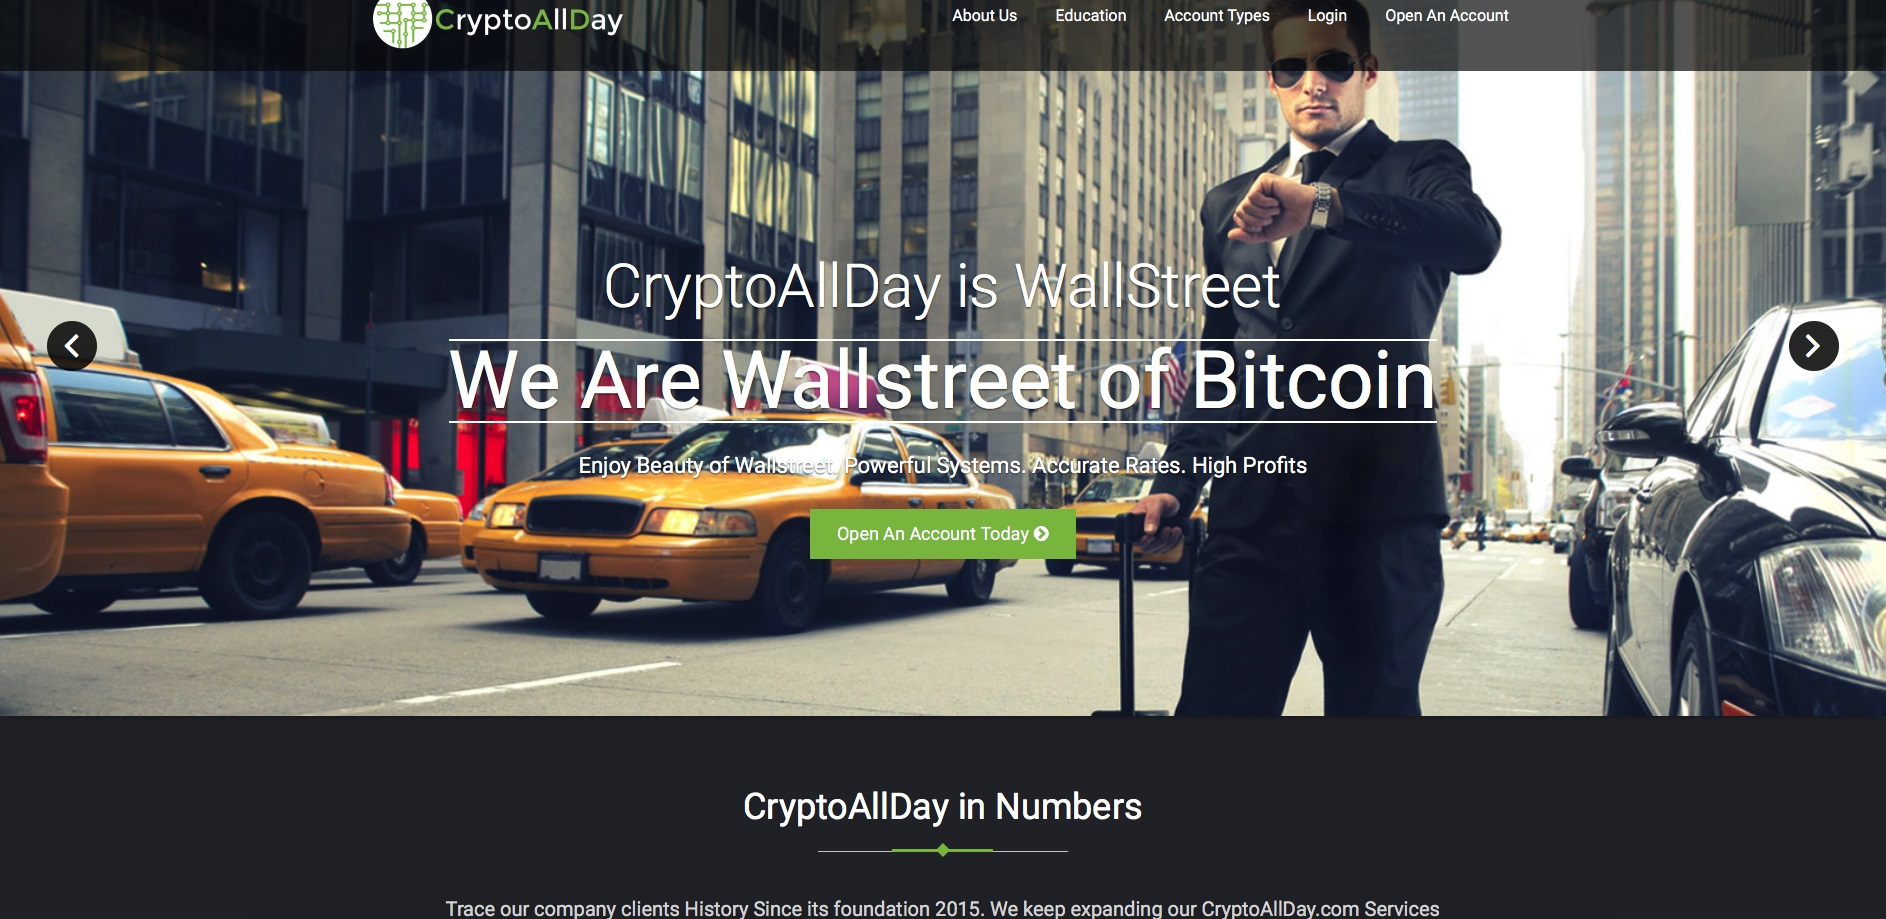 cryptoallday.com - Crypto All Day